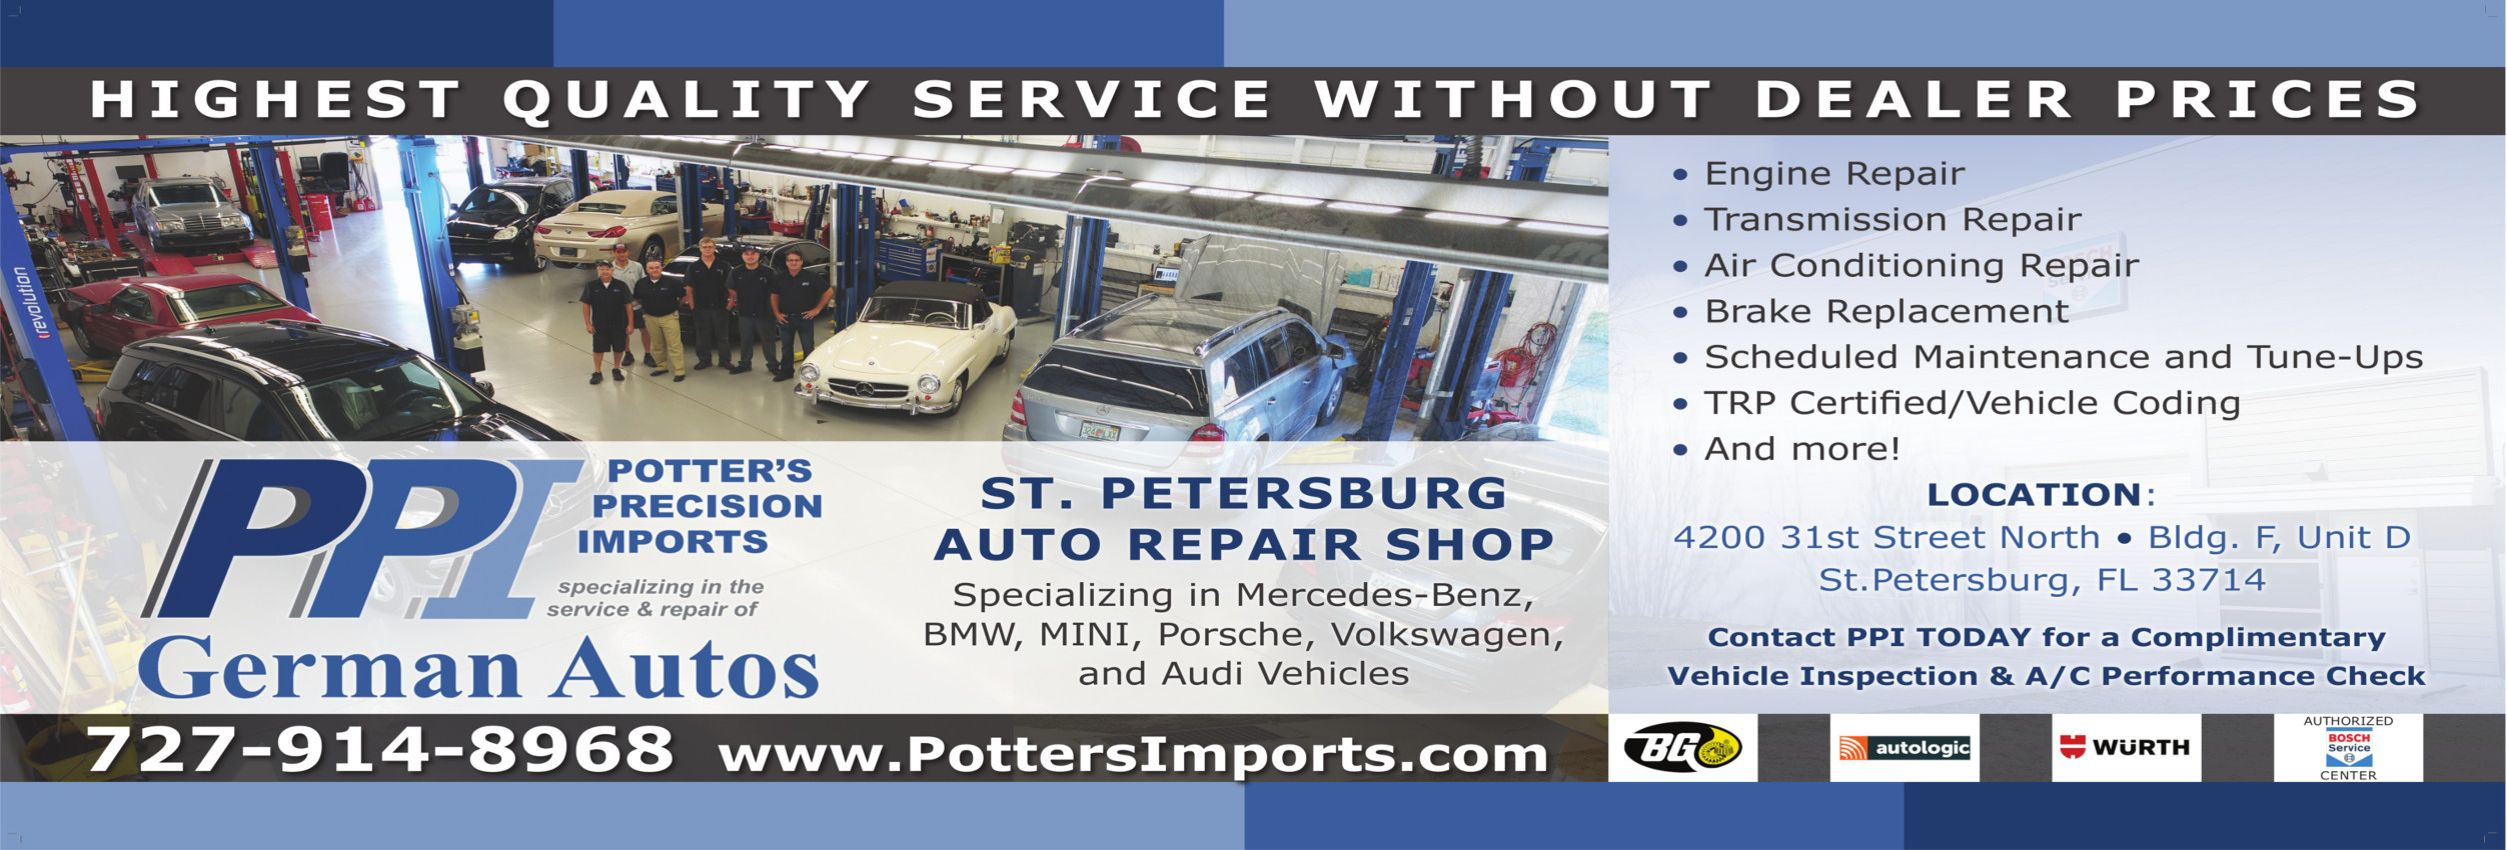 St. Petersburg Import Auto Repair Shop   Potter's Precision Imports